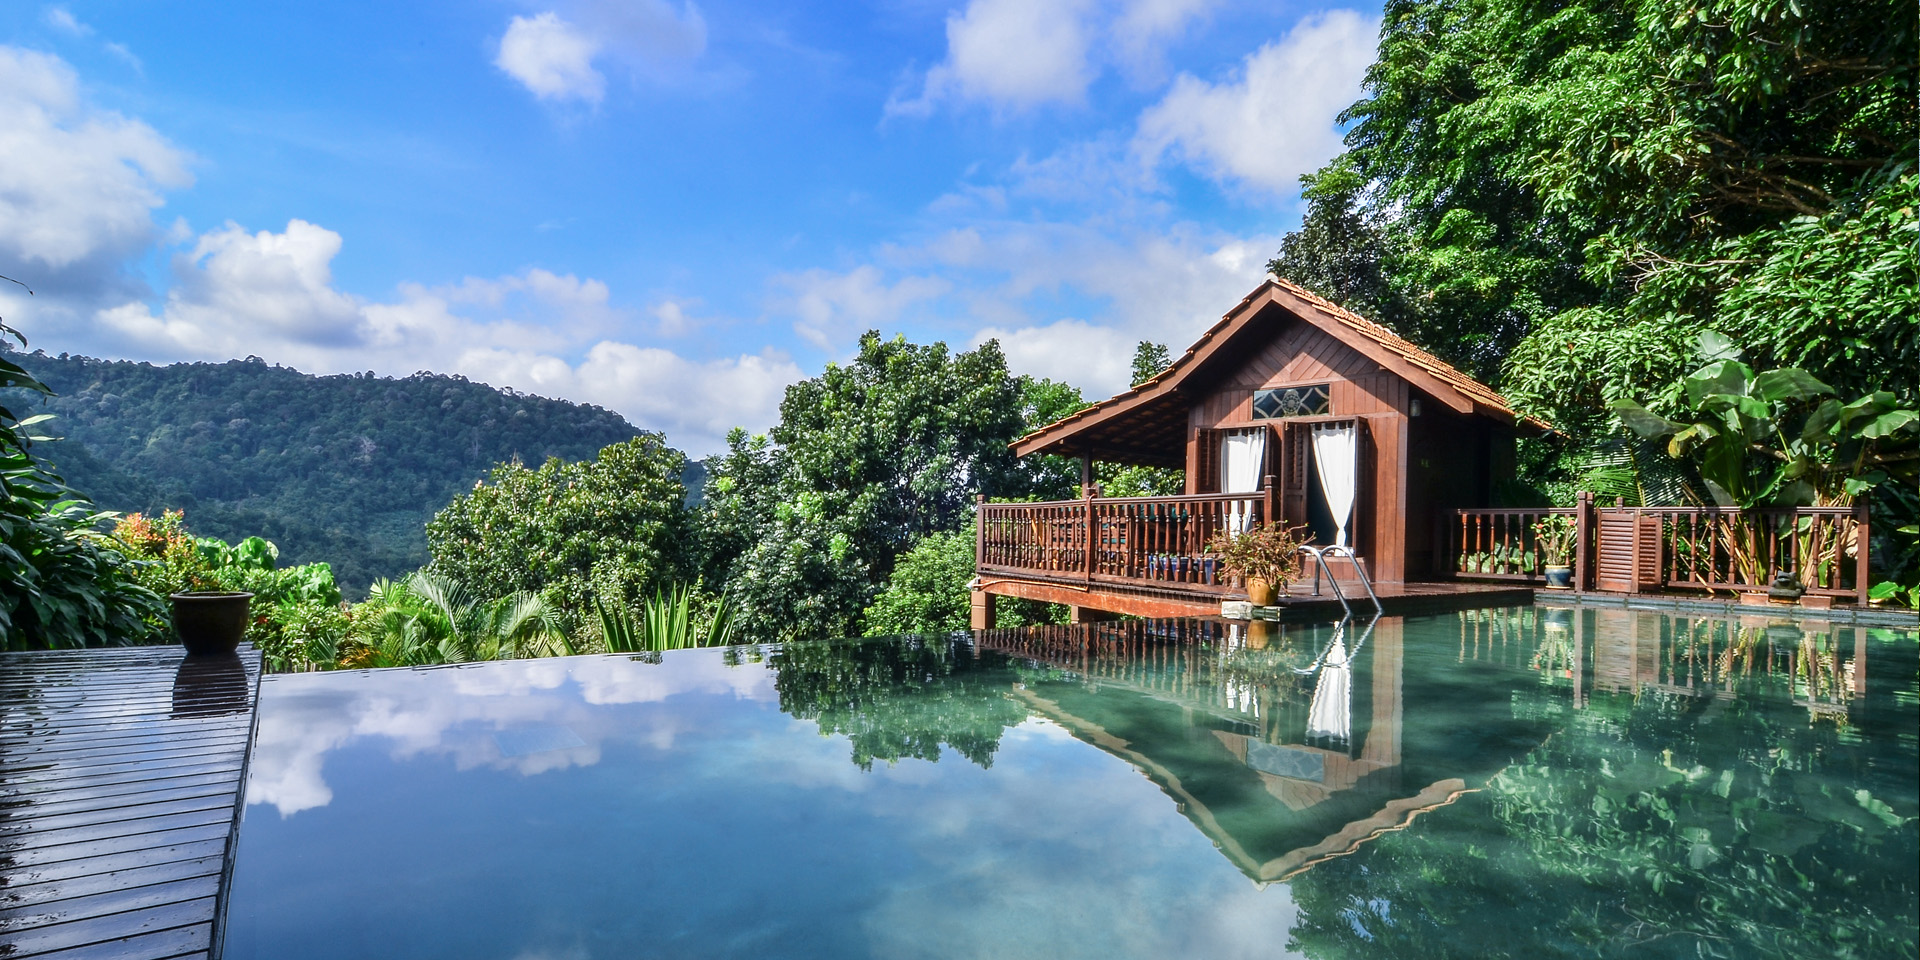 The Dusun Rainforest Resort.